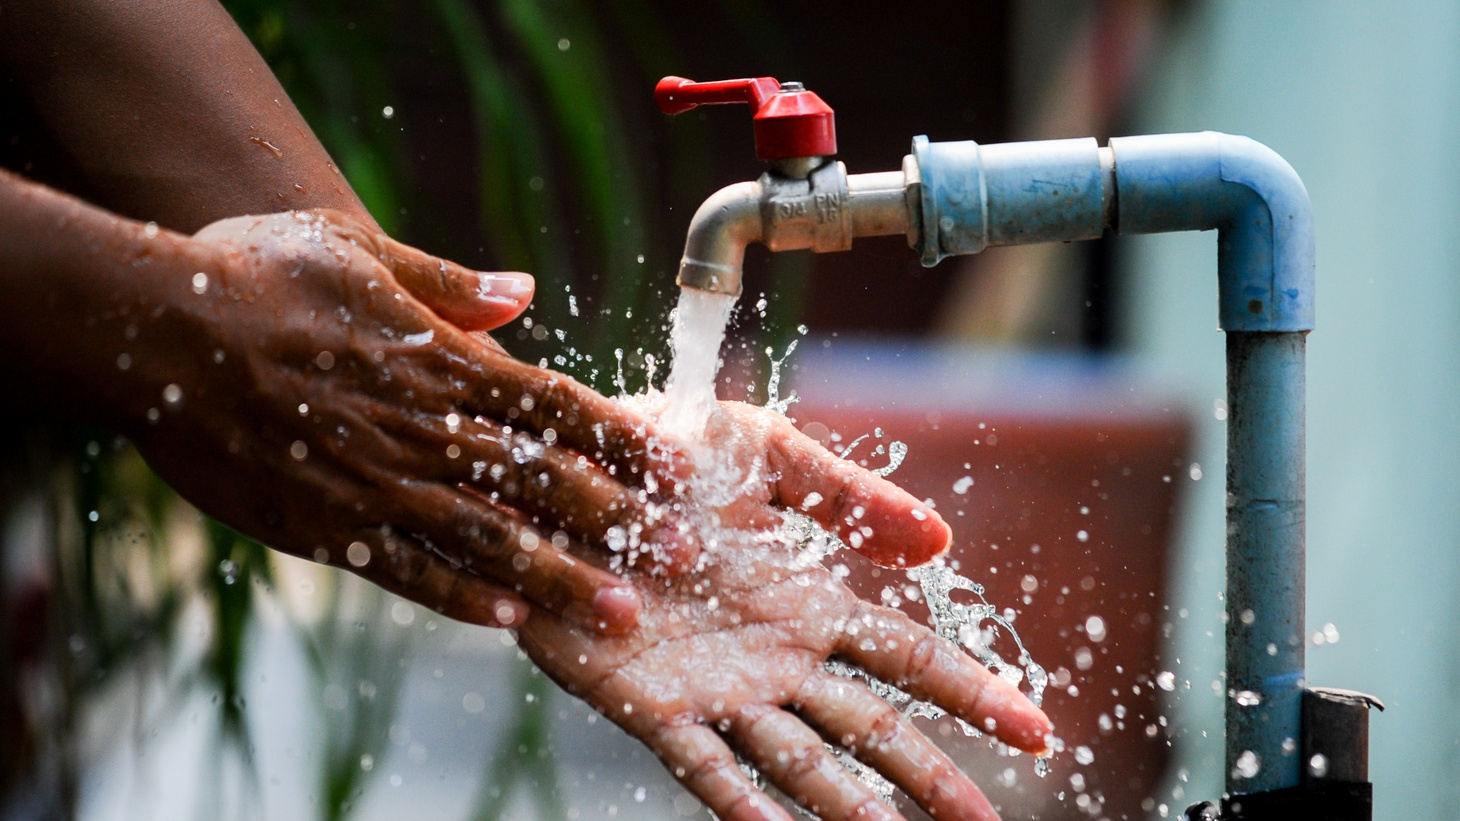 Nearly 19 million people across Southern California depend on the Metropolitan Water District for their water supply.